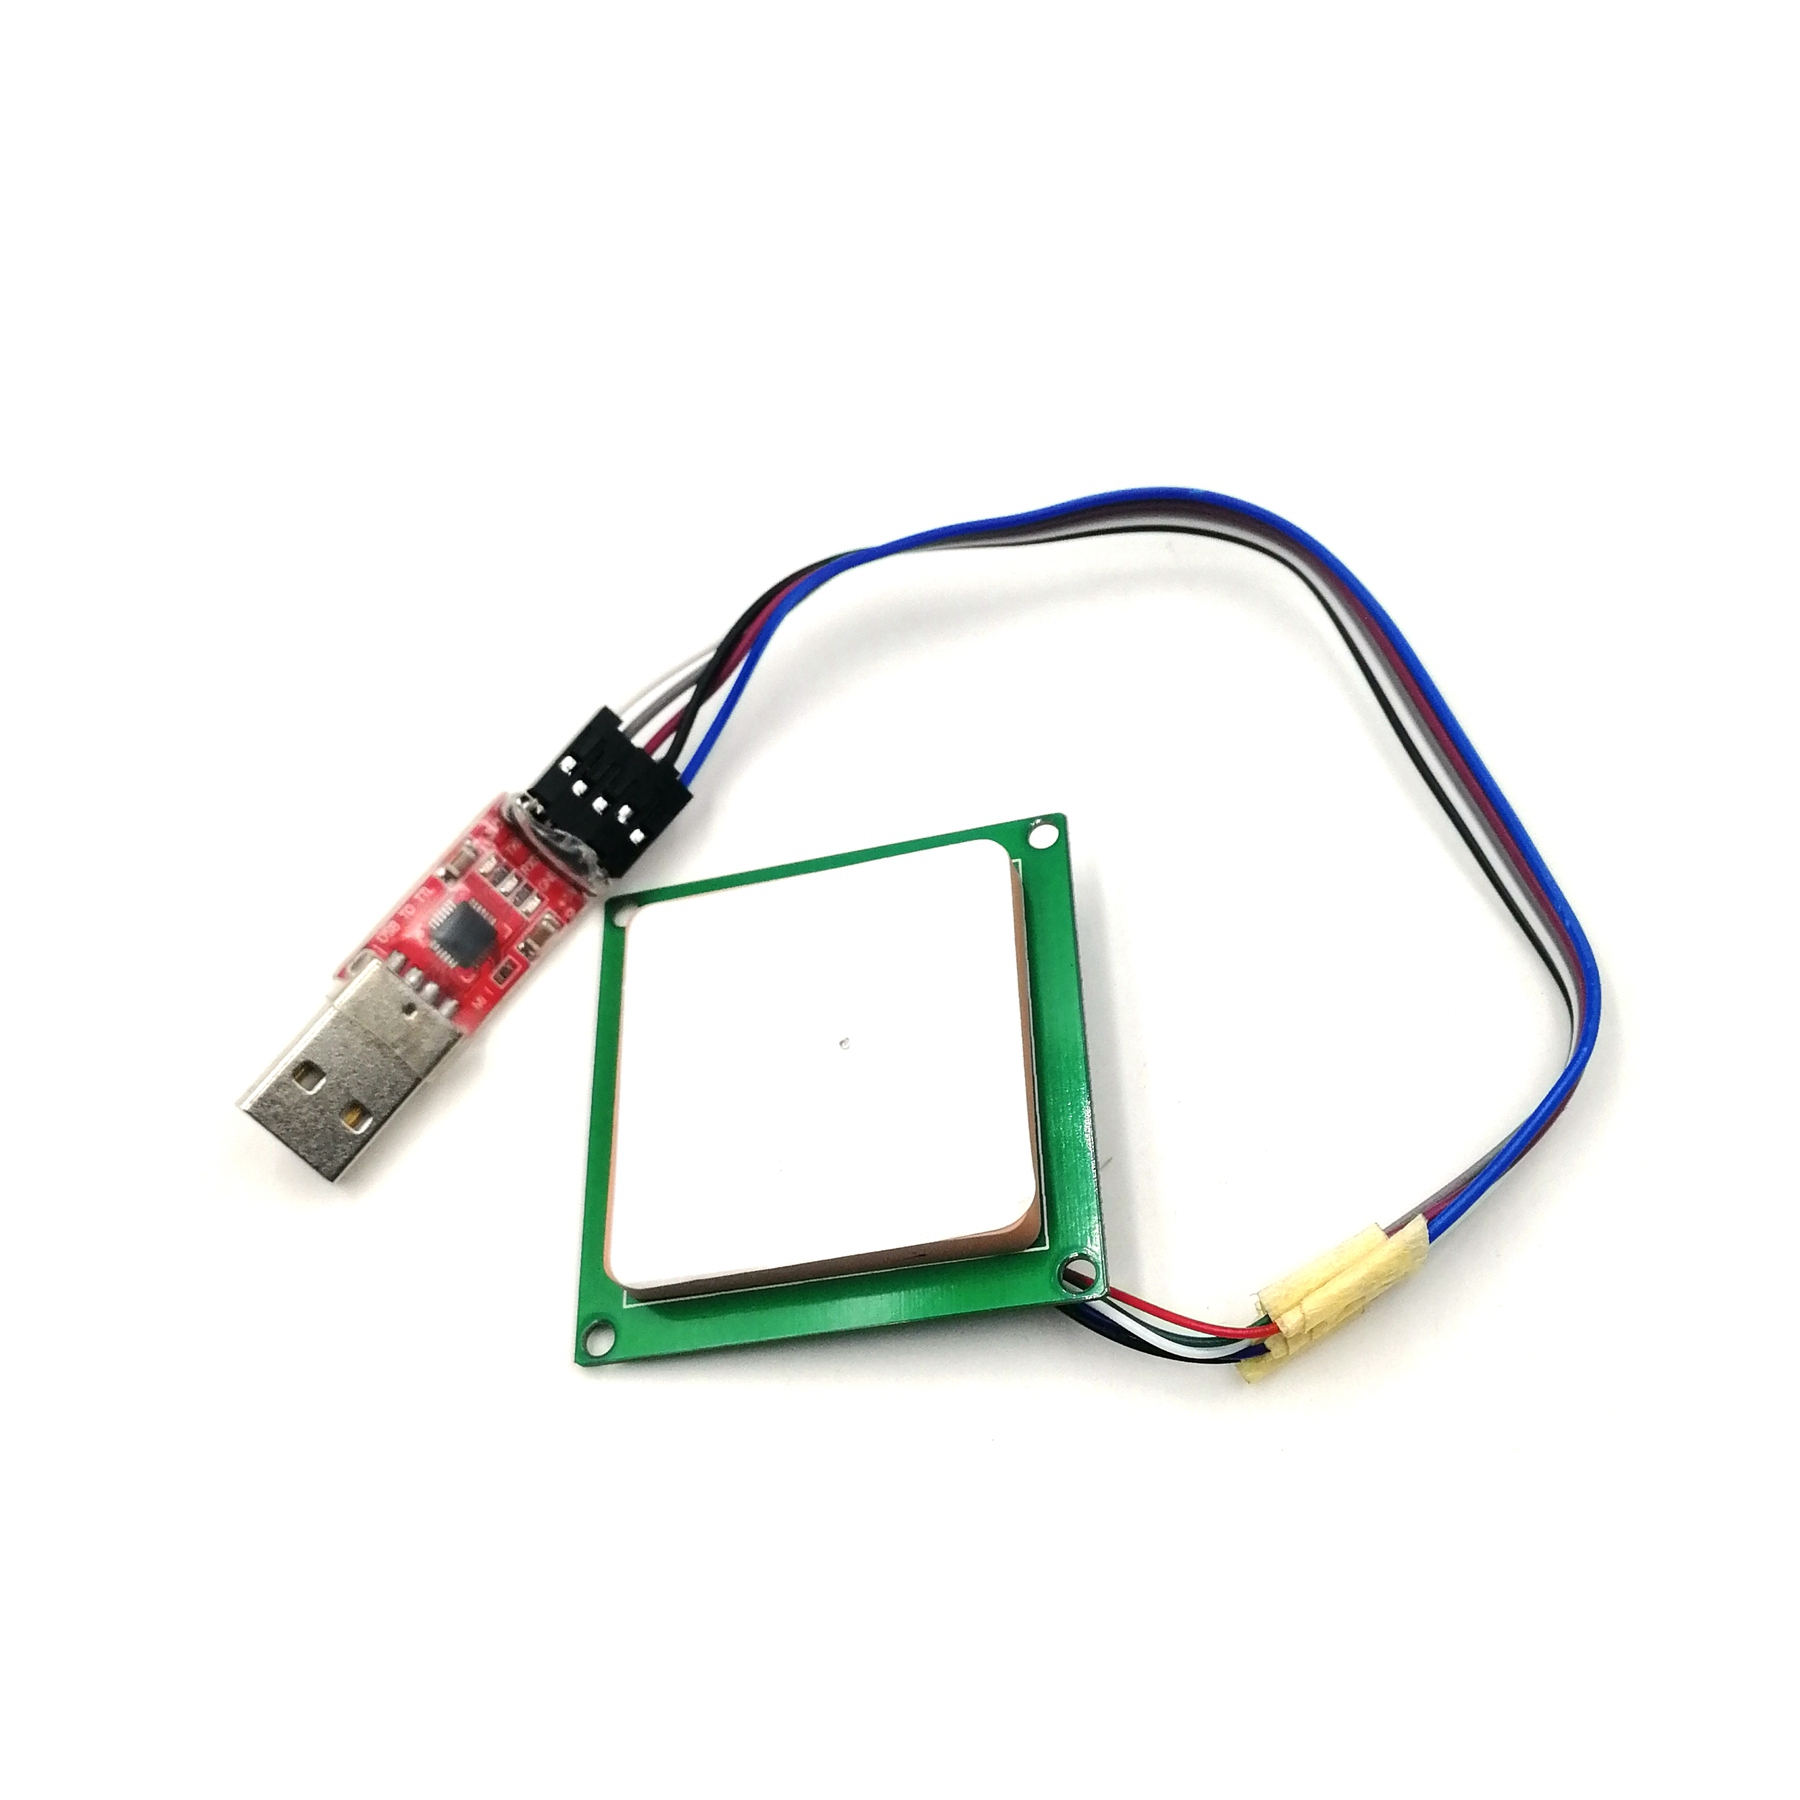 0-3M Long Range UHF Integrated Reader Writer Module 865-868MHz 915mhz 902-928MHz Uart Passive 6C UHF With SDK